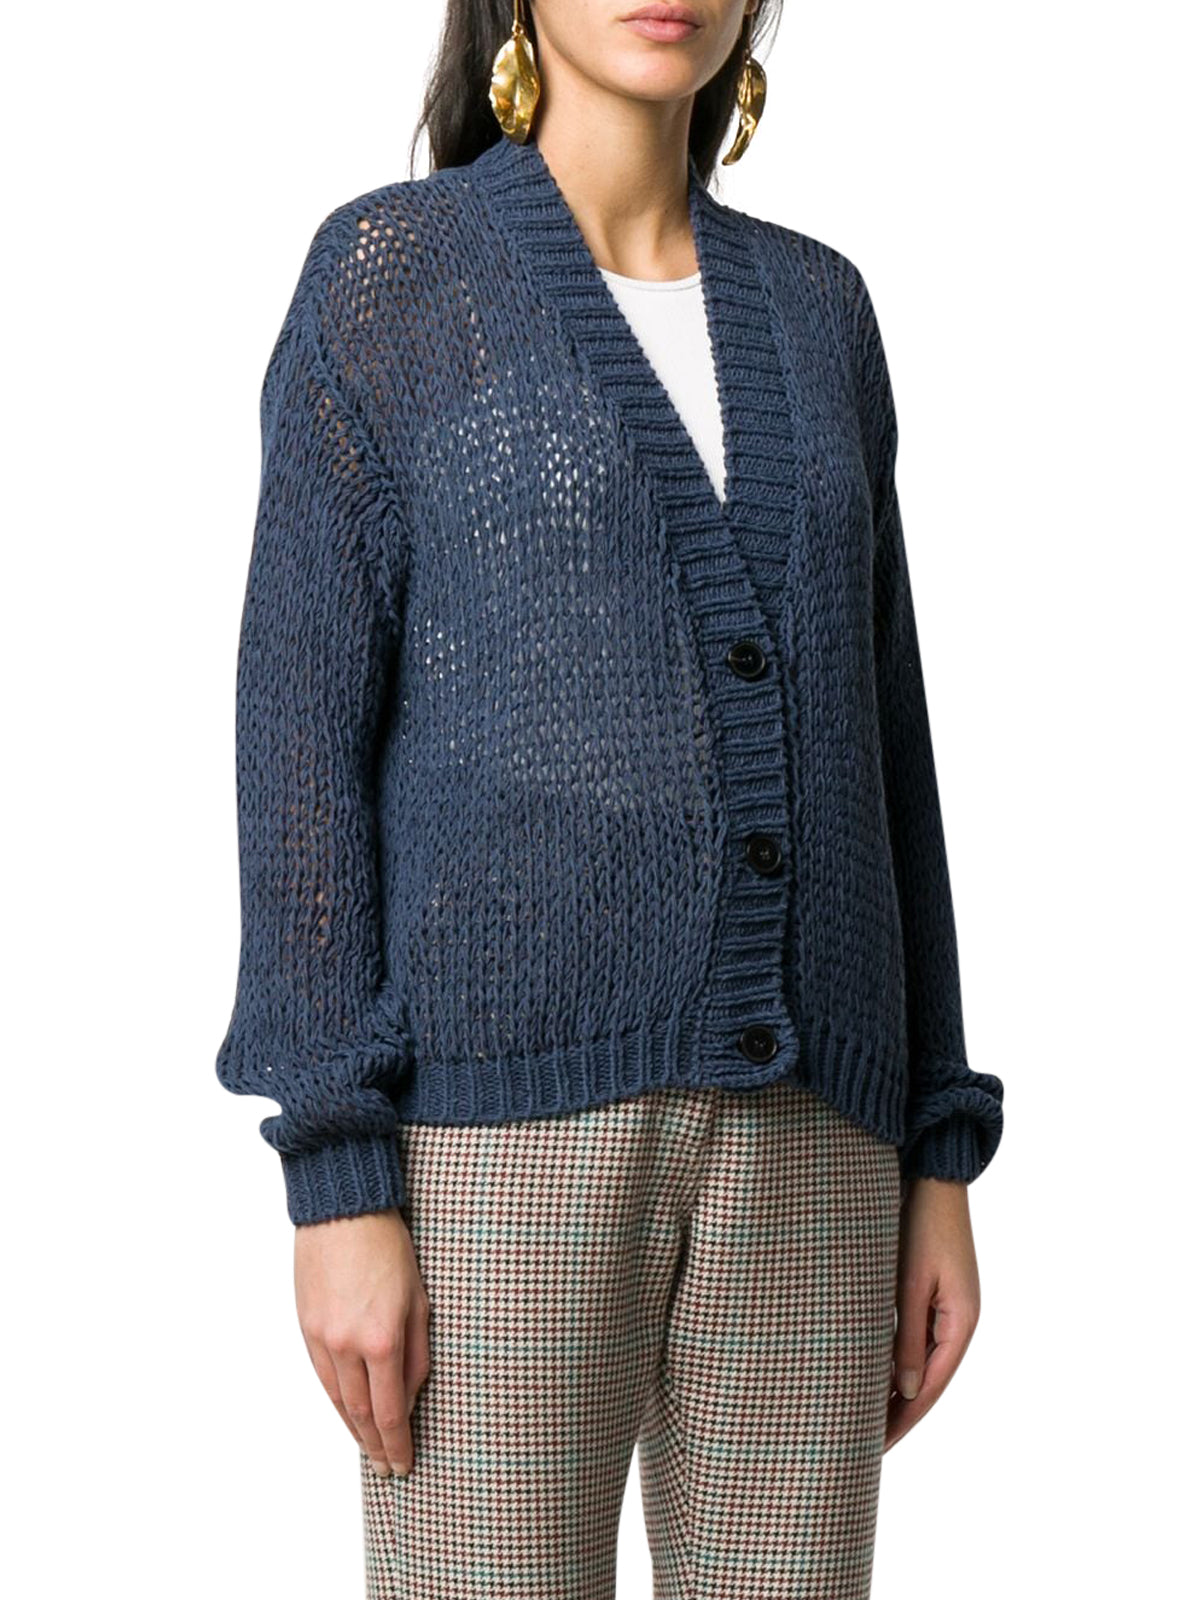 WIDE-KNIT CARDIGAN